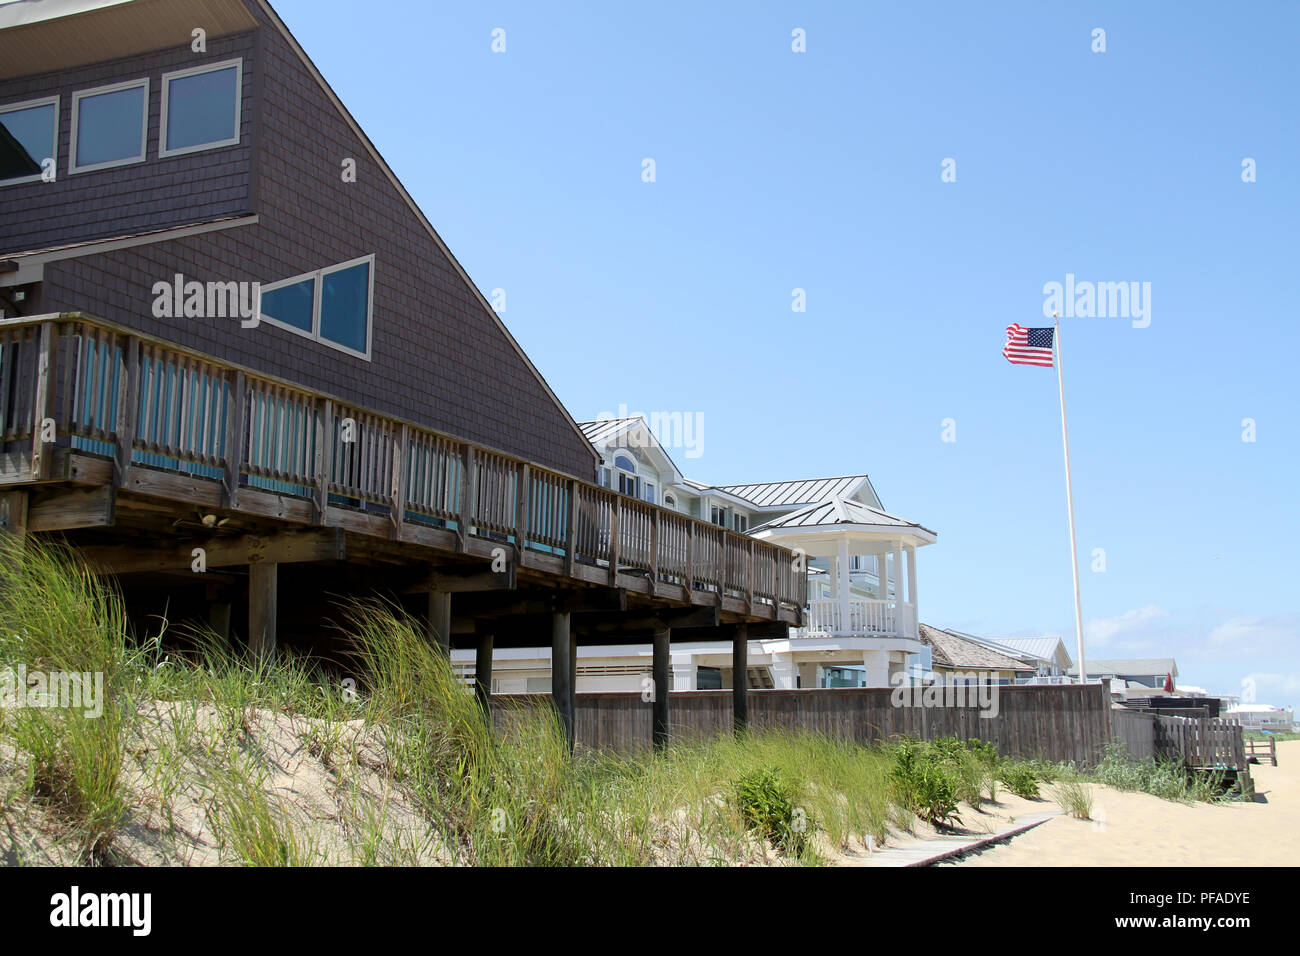 Rental houses on the shore of the Atlantic Ocean, at